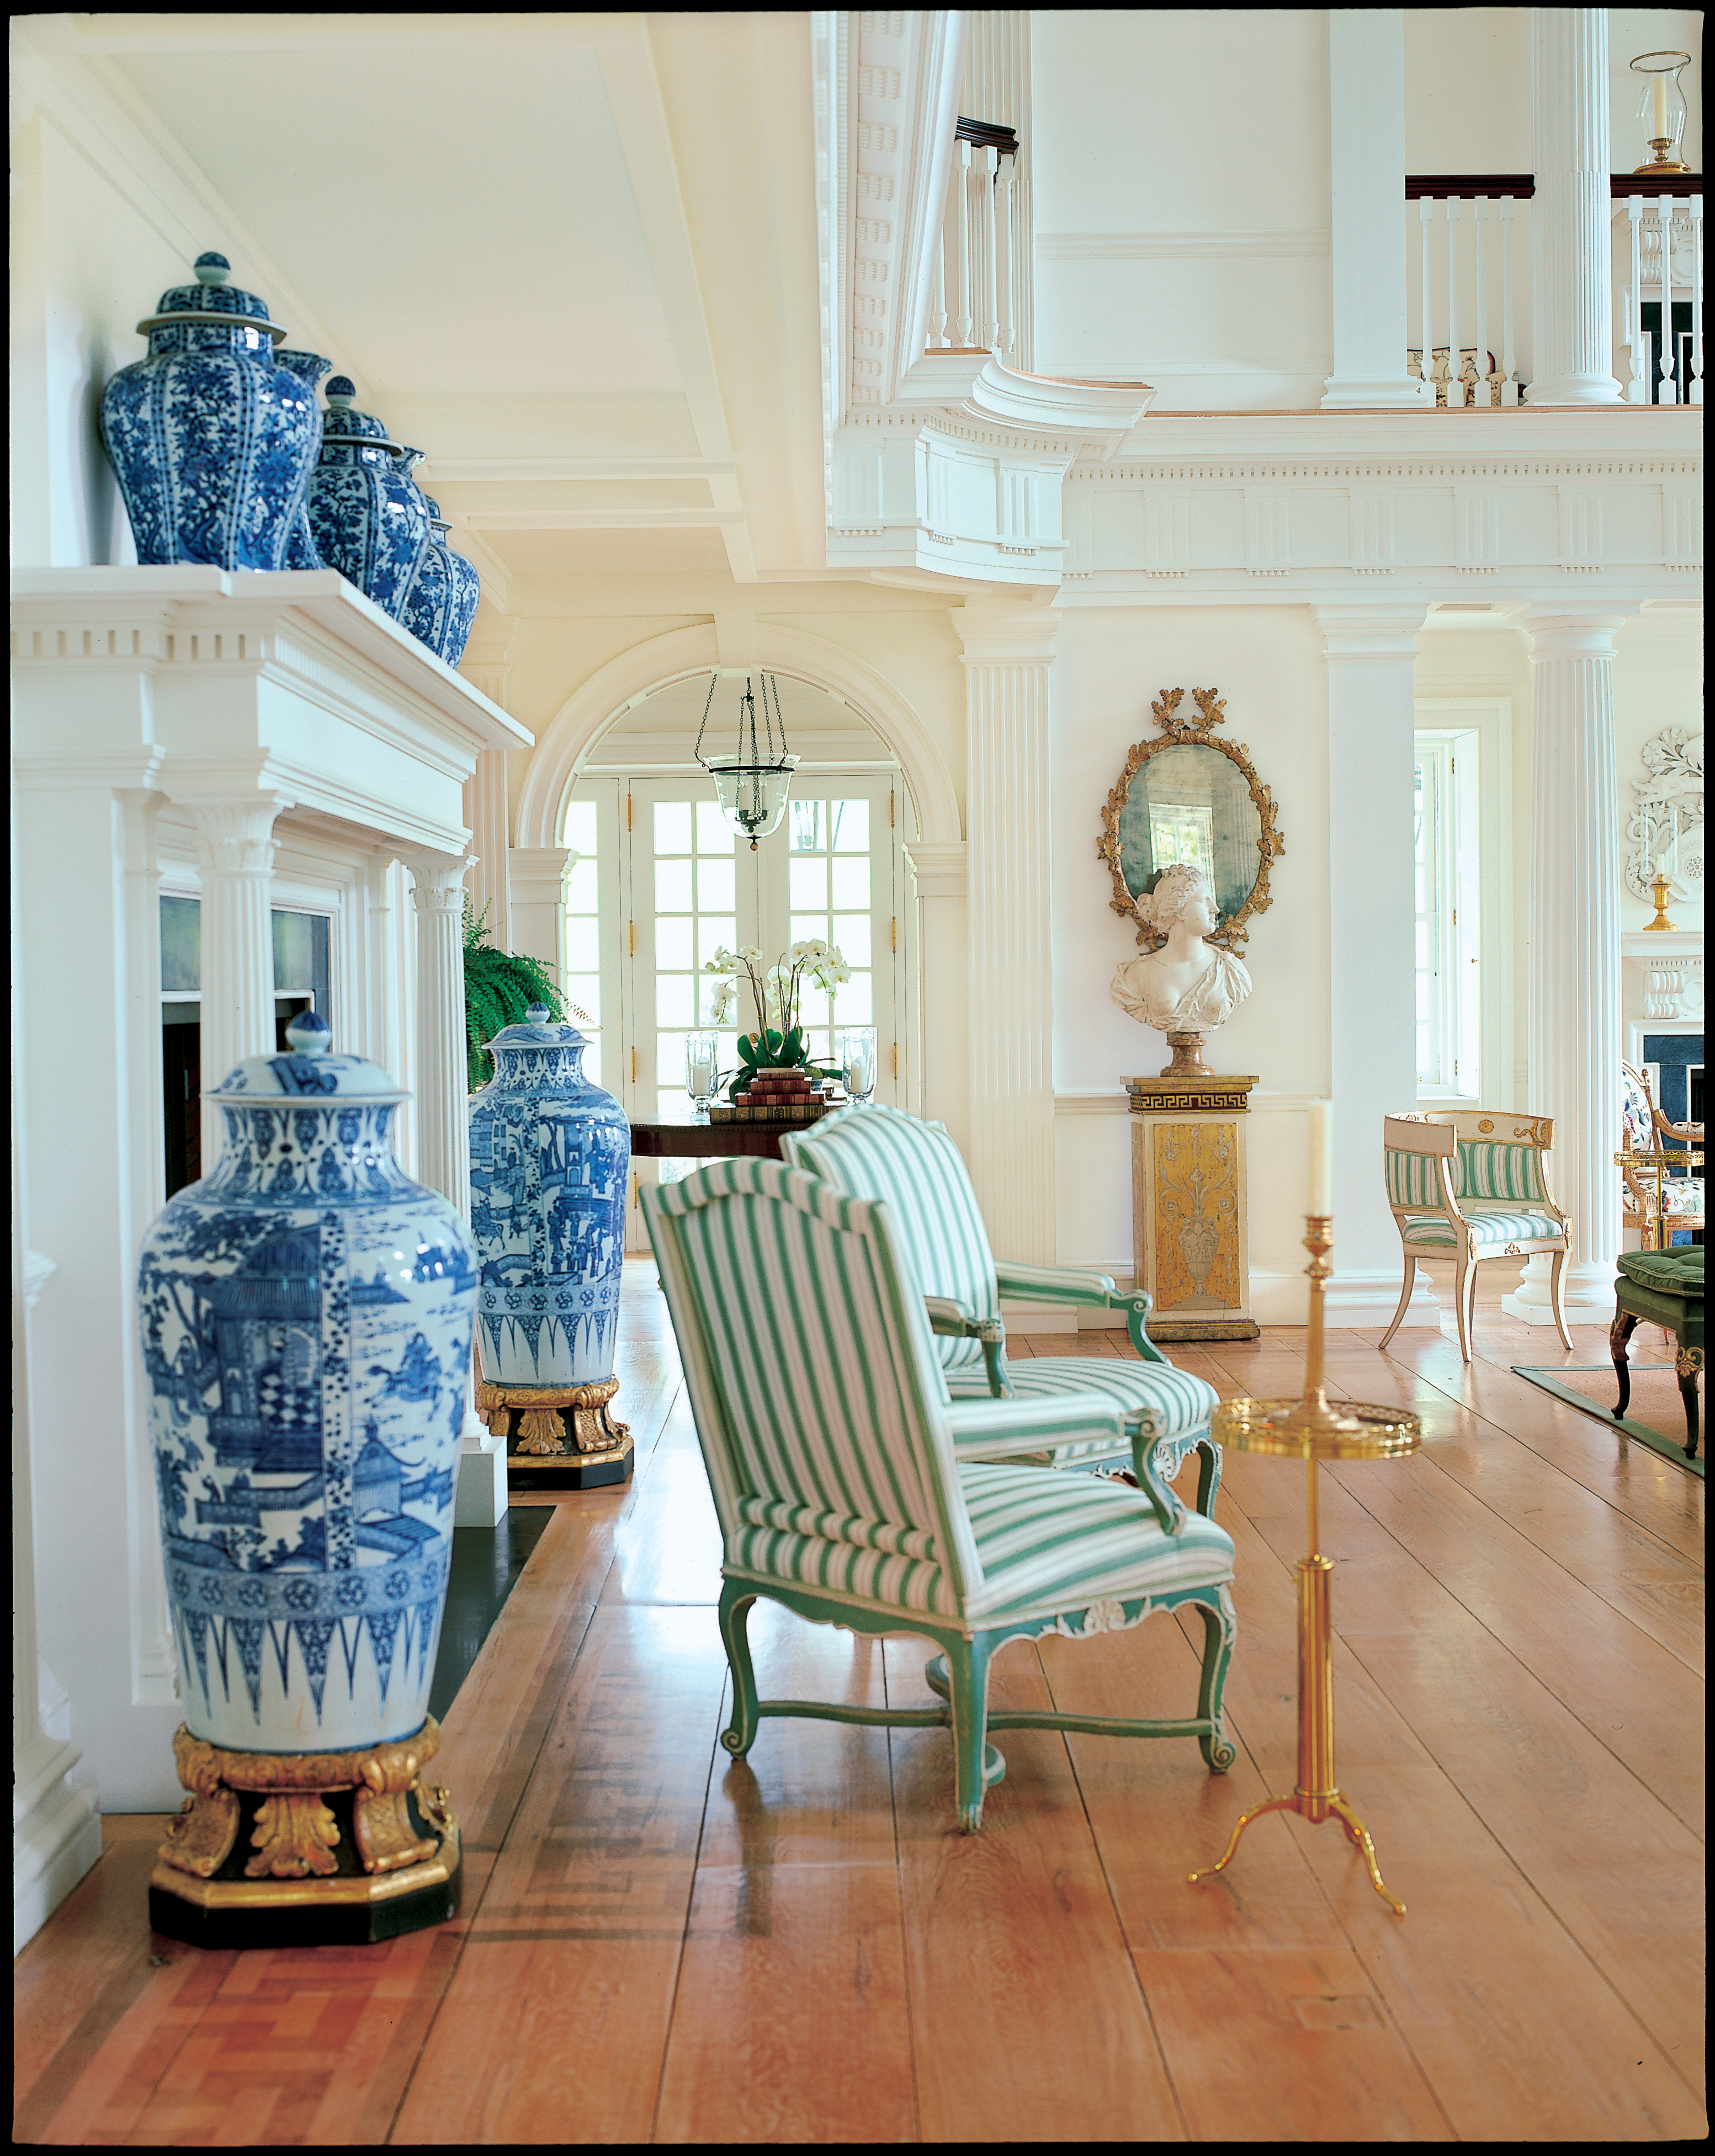 interiors ben to apartments textbooks design country interior houses amazon books from ca city dp english pentreath manor inspirational